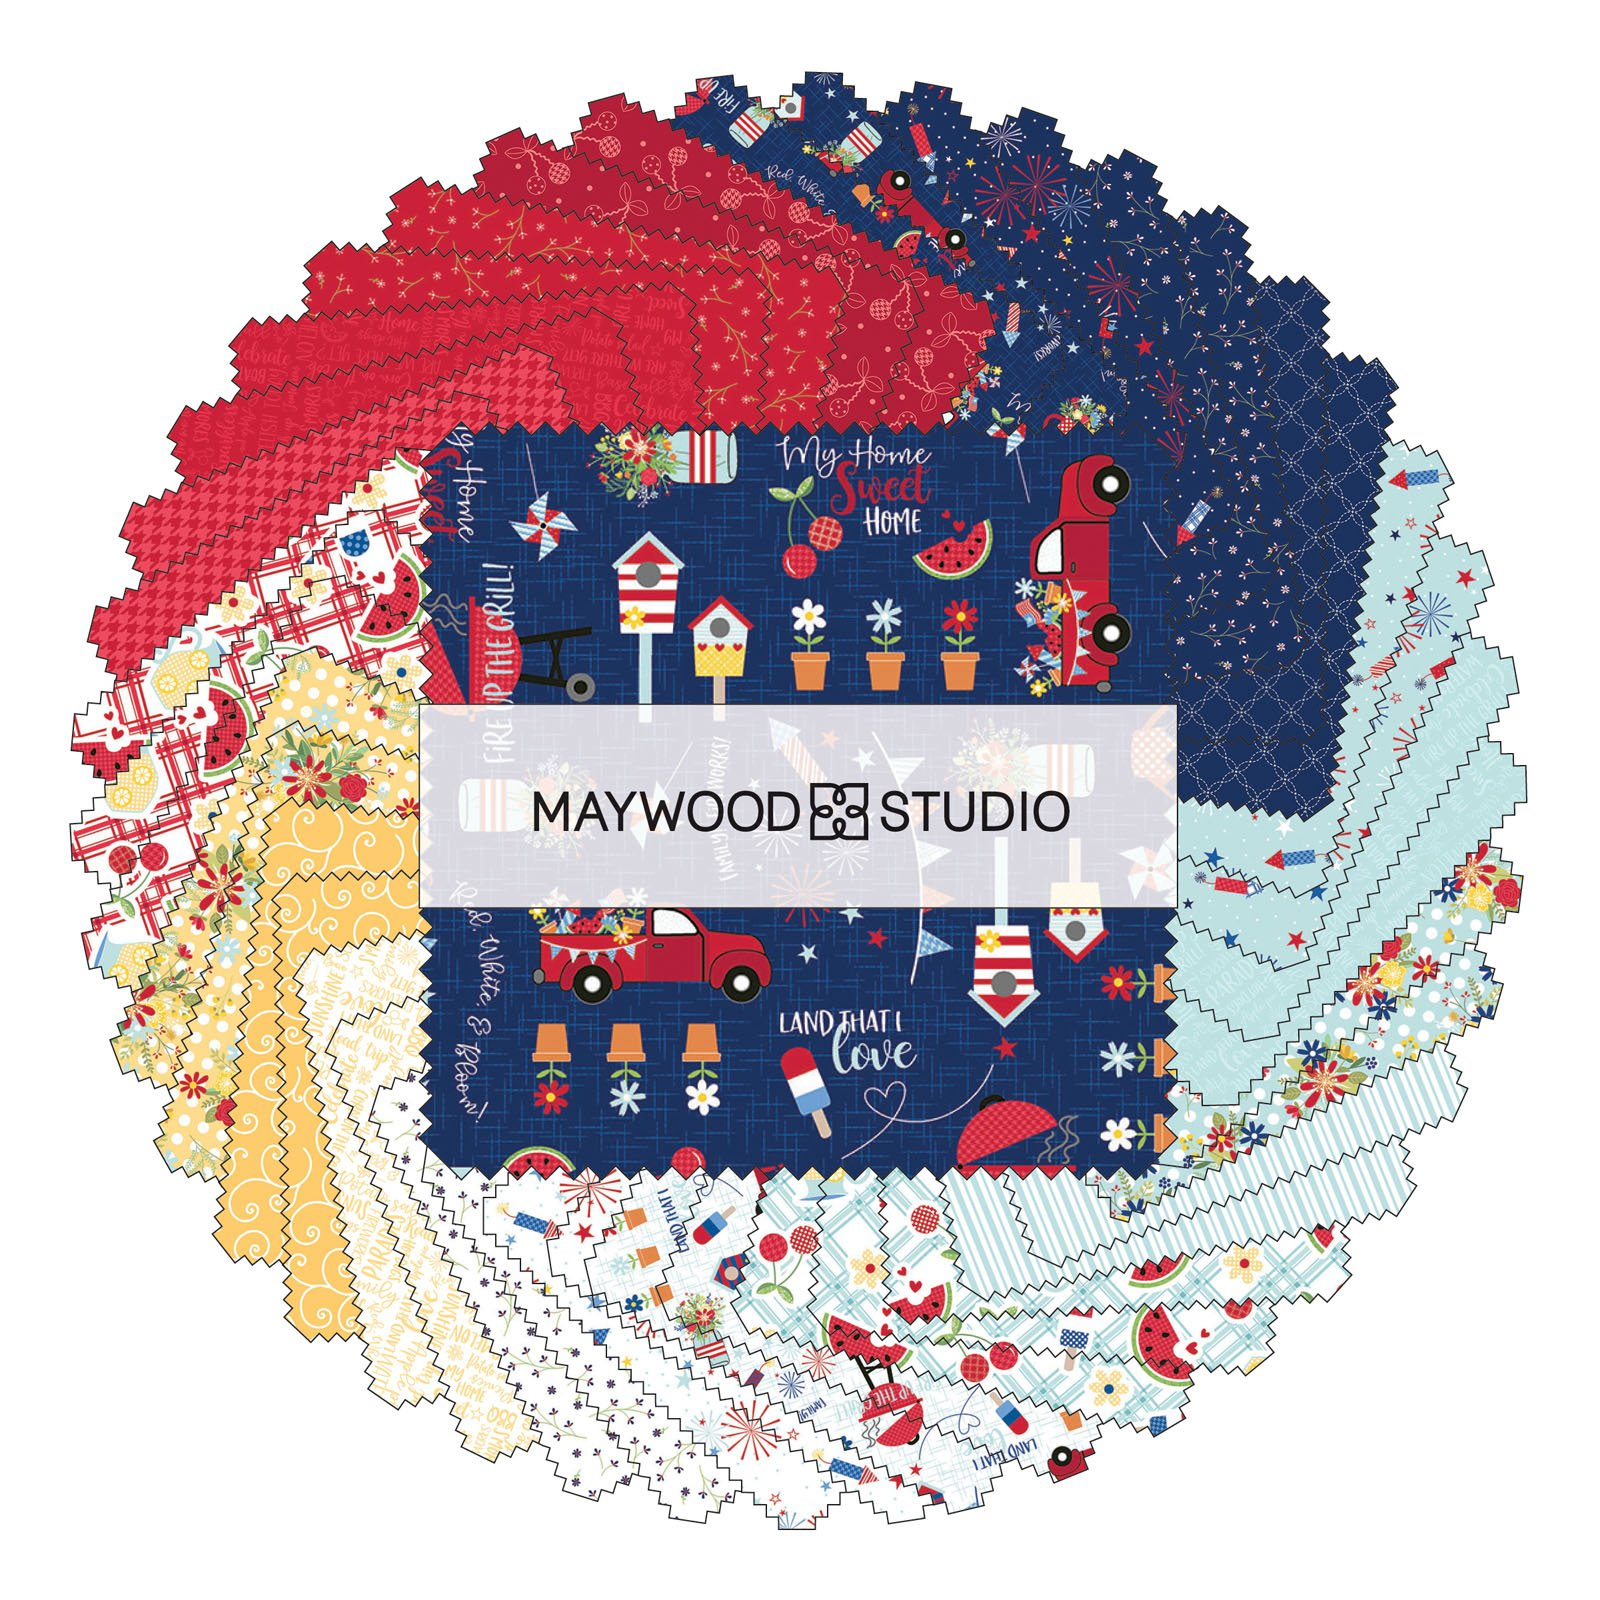 EESC-CPMASRWB - RED, WHITE & BLOOM 5 CHARMS (42PC) - ARRIVING MARCH 2021